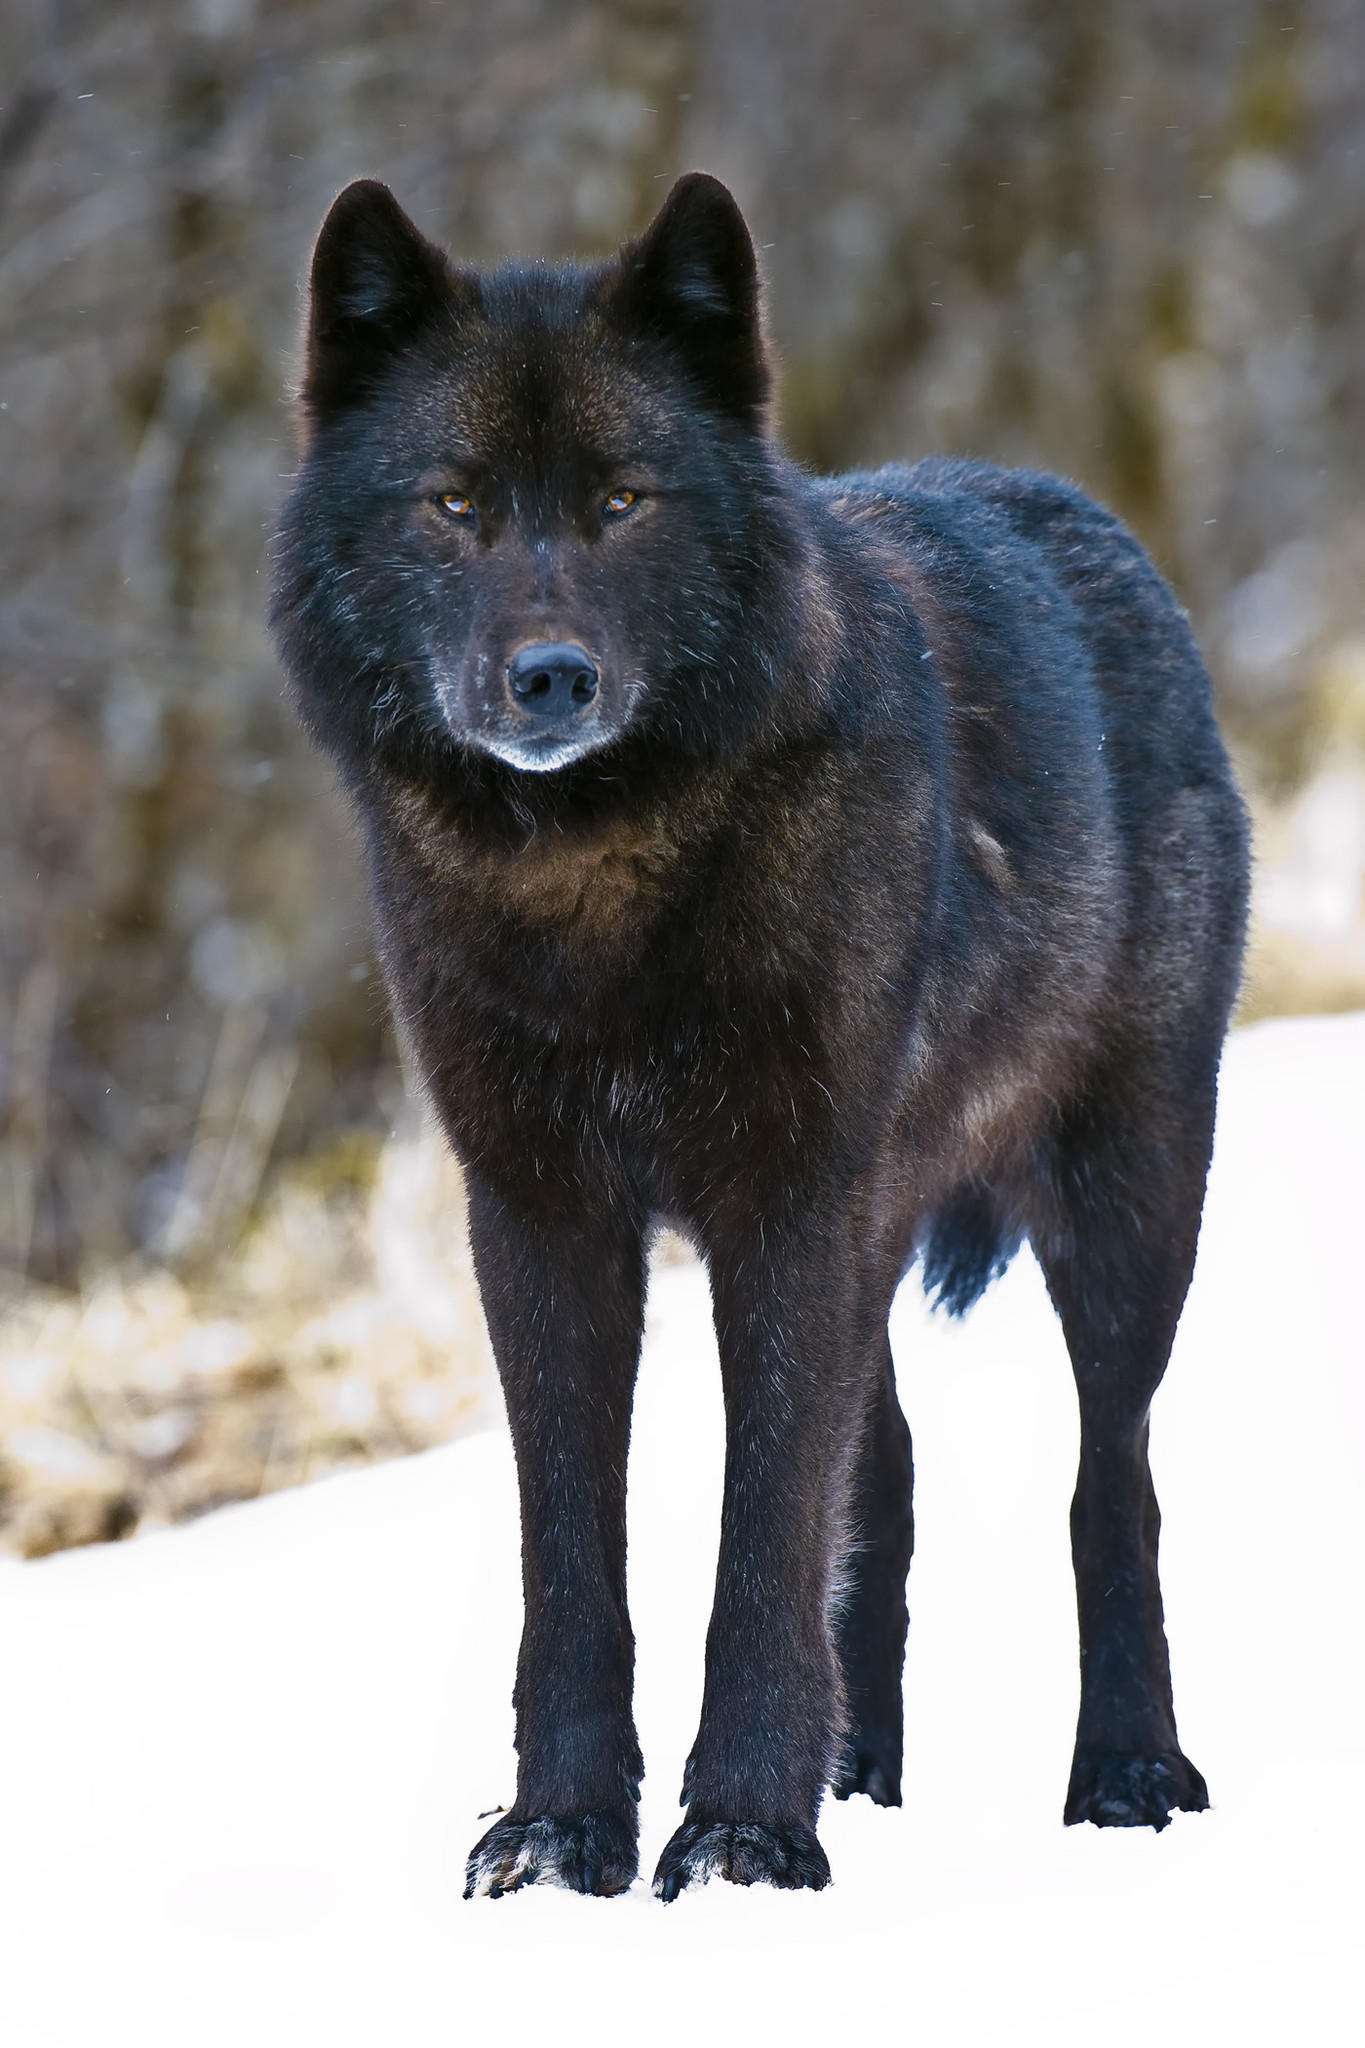 An Alexander Archipelago wolf, found only in southeast Alaska.